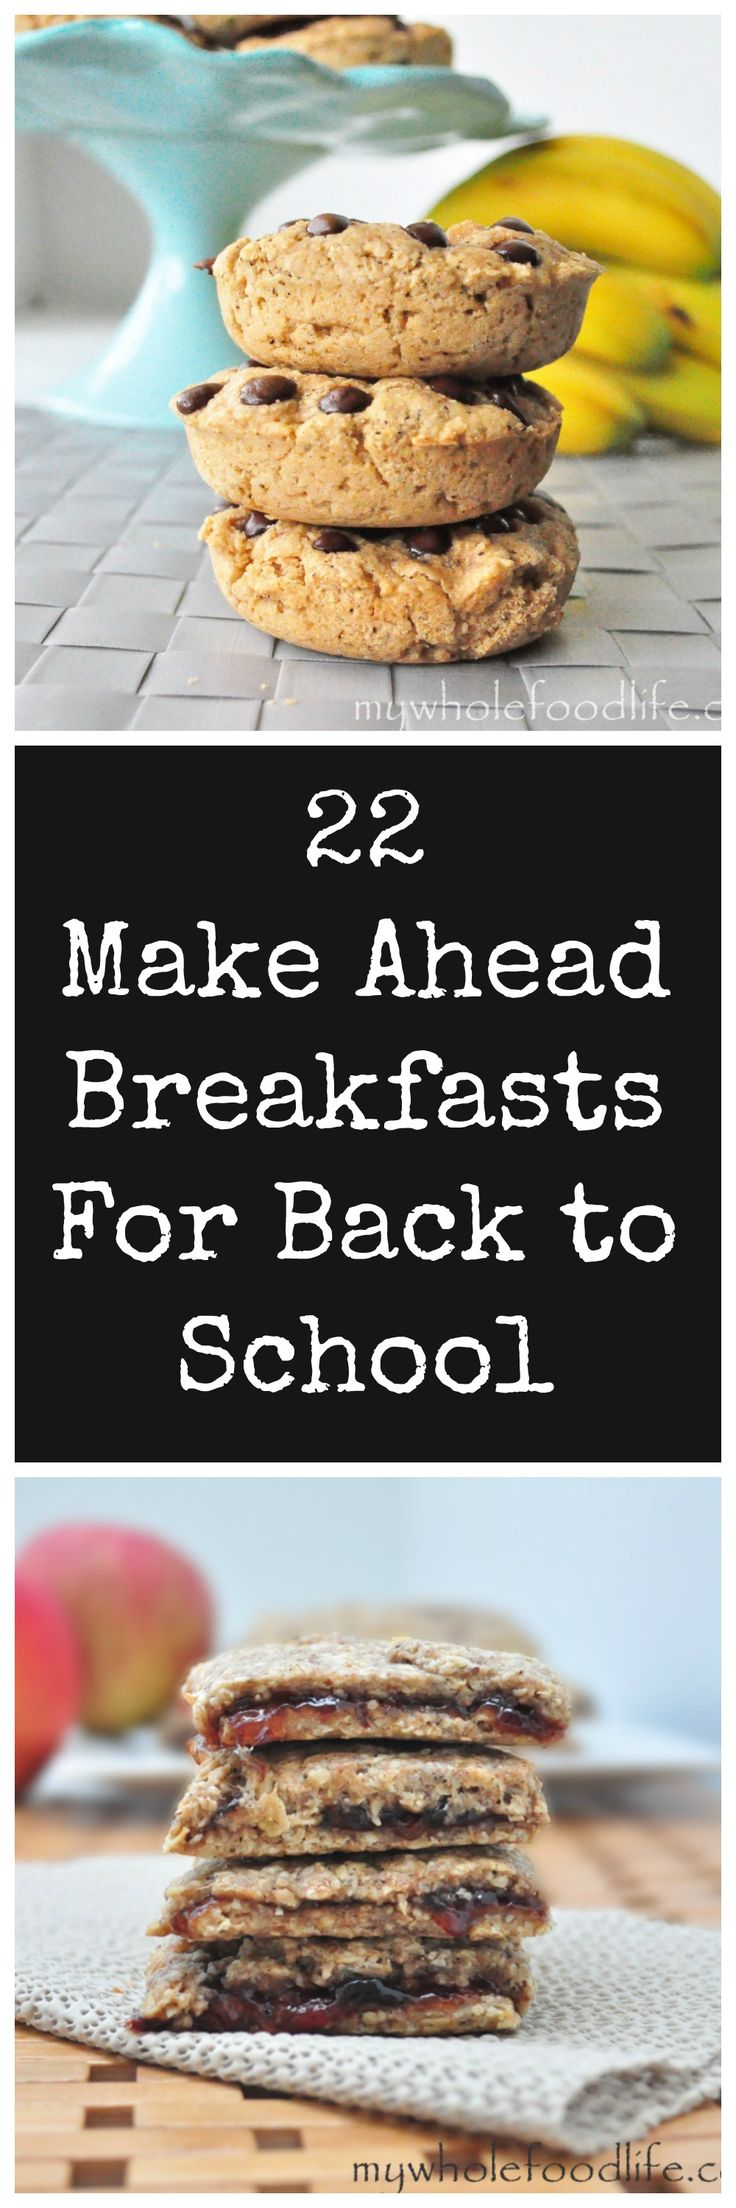 12 (not 22) Make Ahead Breakfasts for Back to School Mornings